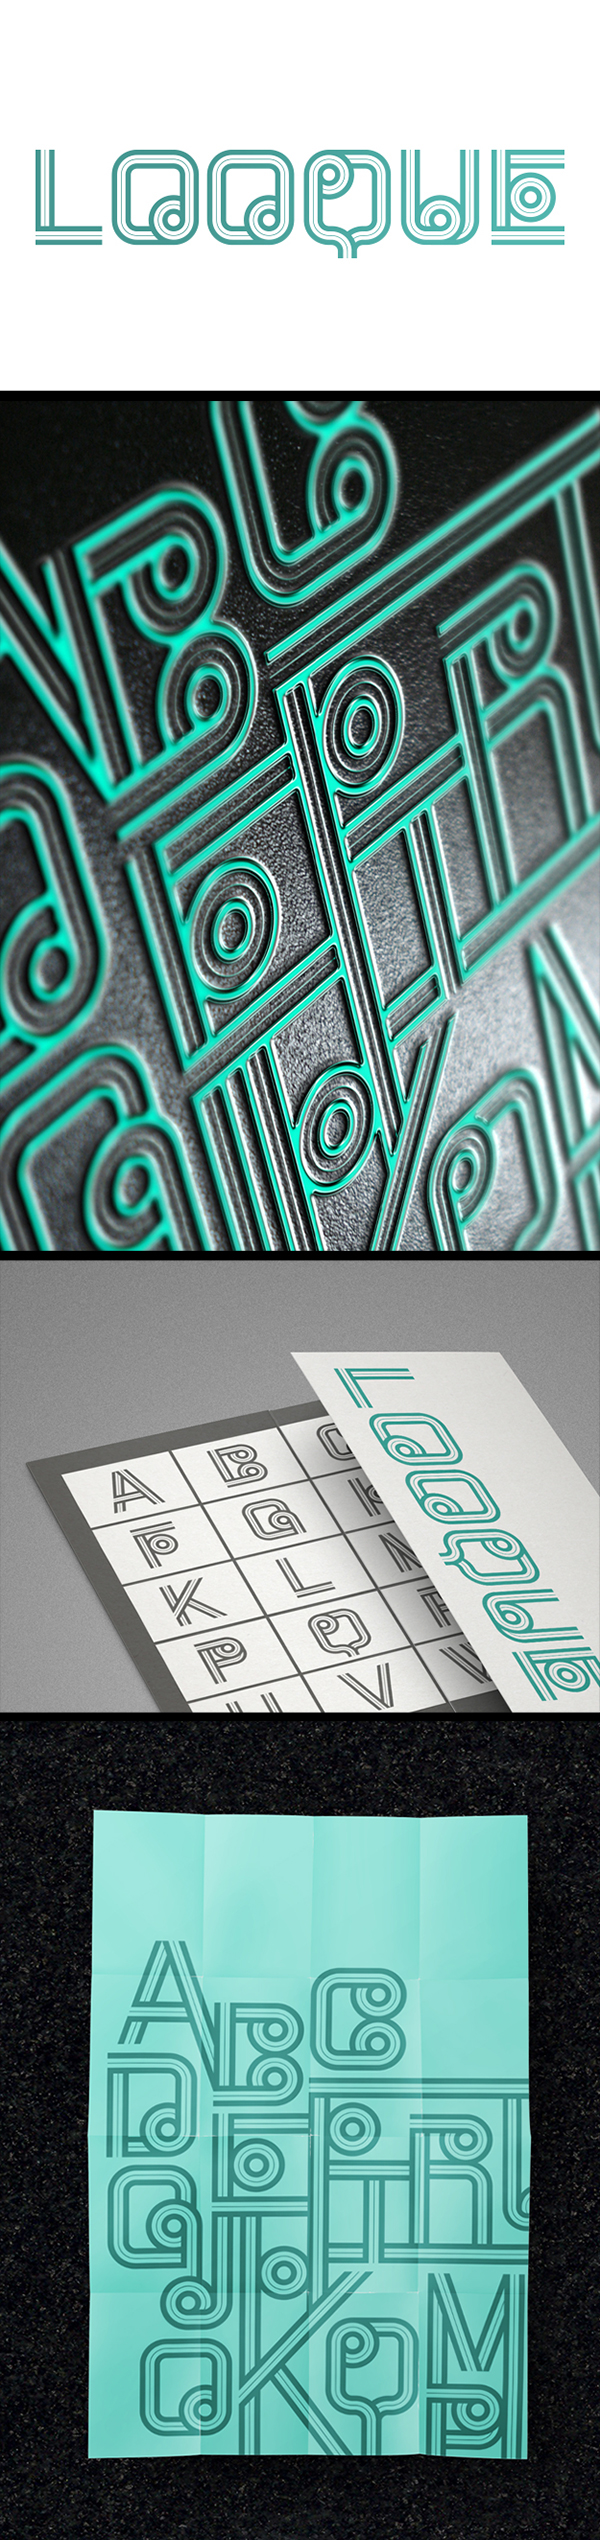 LOOQUE - Decorative Typeface :: free download on behance.net